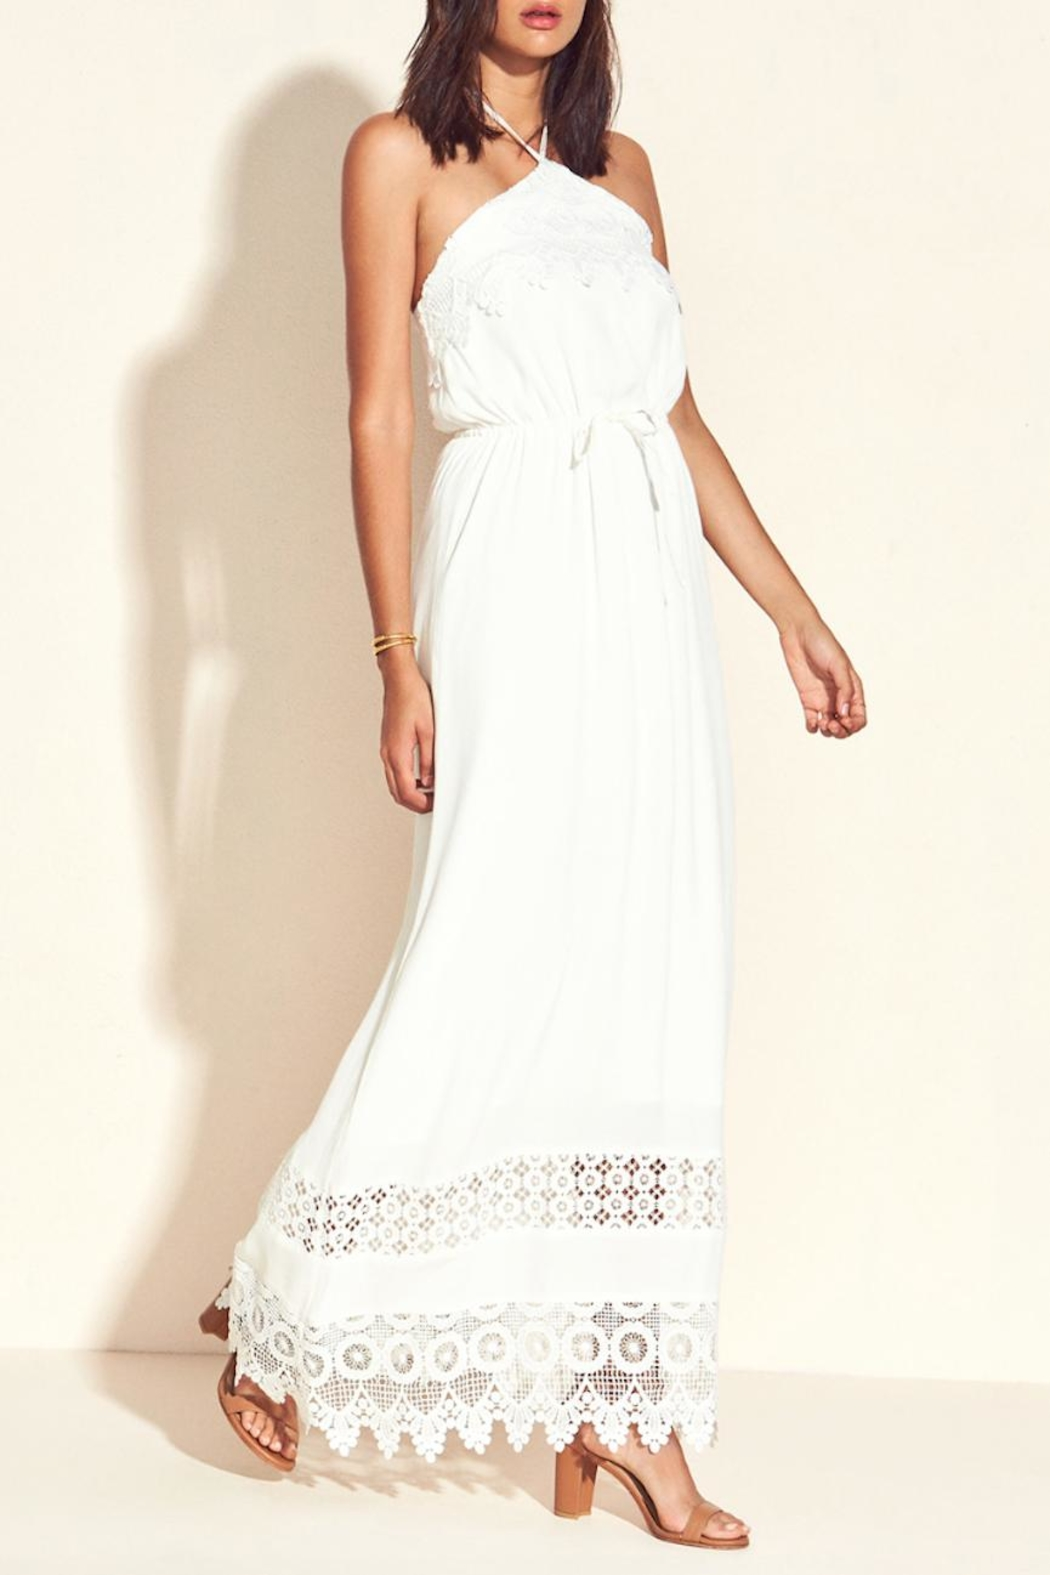 764f522b98ab Lovers + Friends White Halter Maxi Dress from New Jersey by The ...